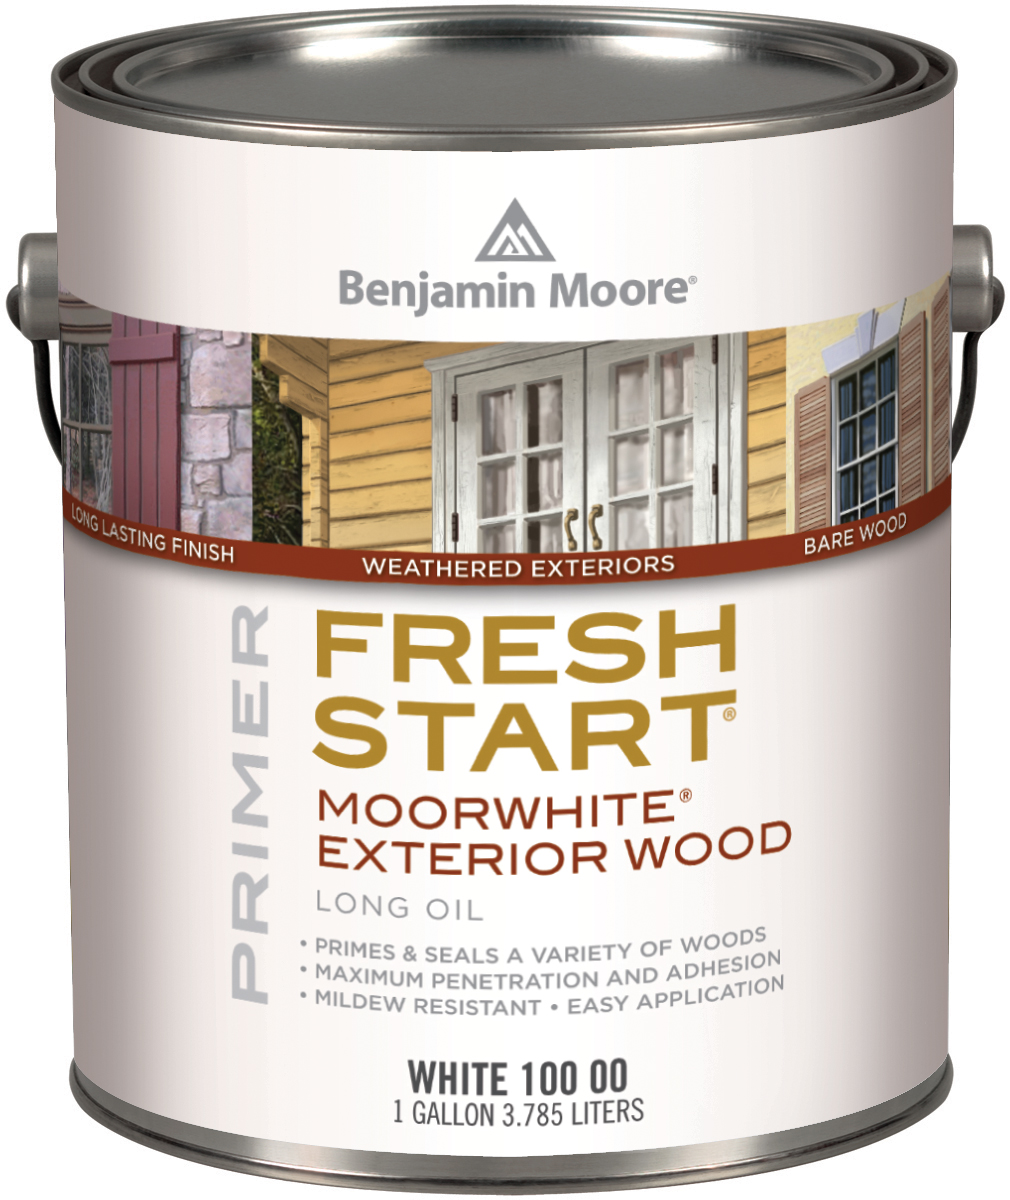 Factory Paint Amp Decorating Exterior Prep And Painting Tips